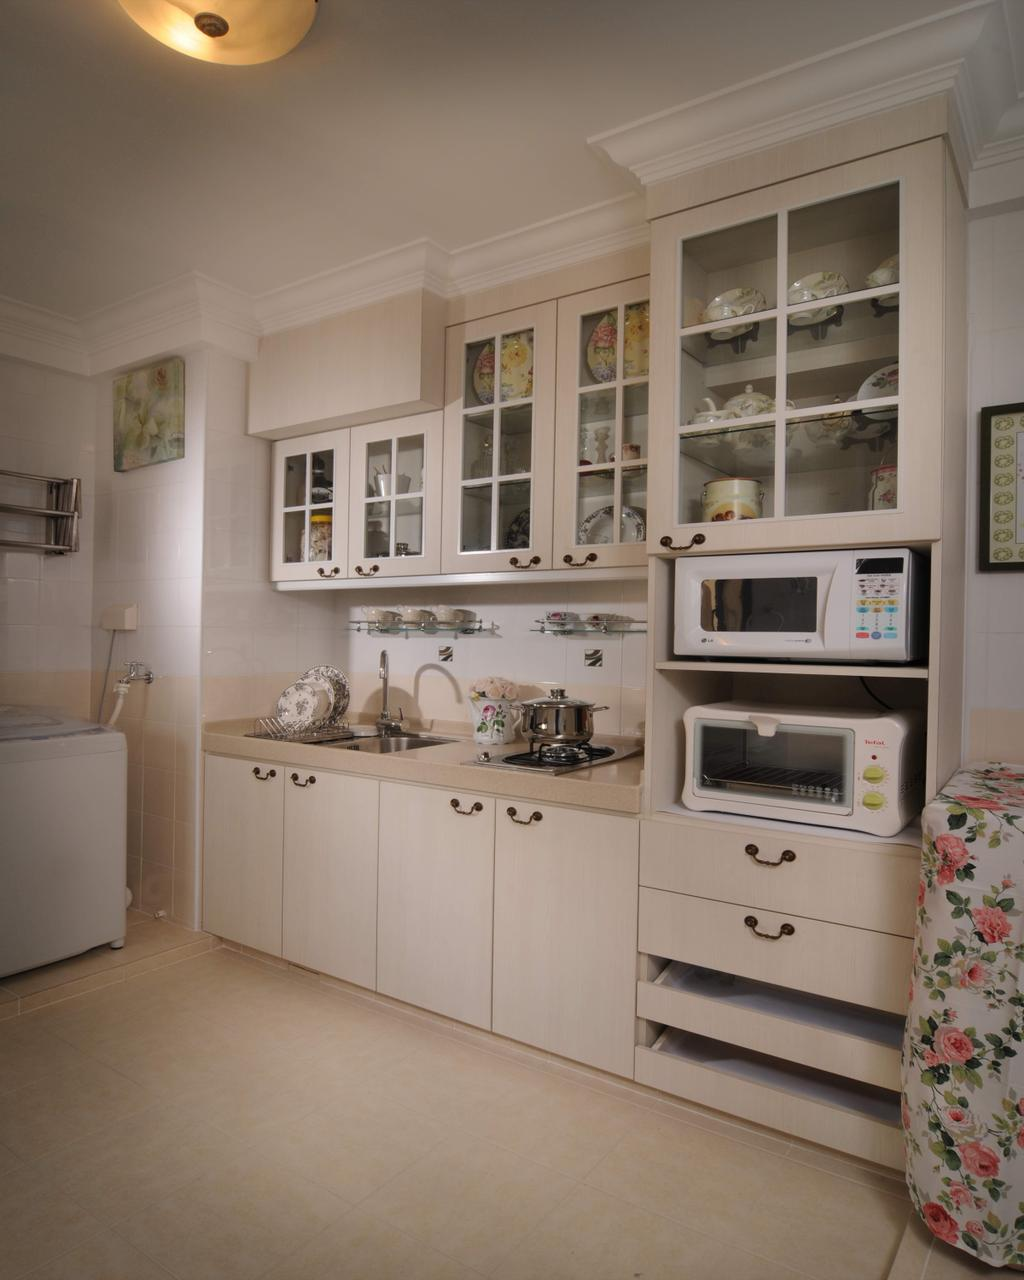 Room Designer Kitchen: Interior Design Singapore